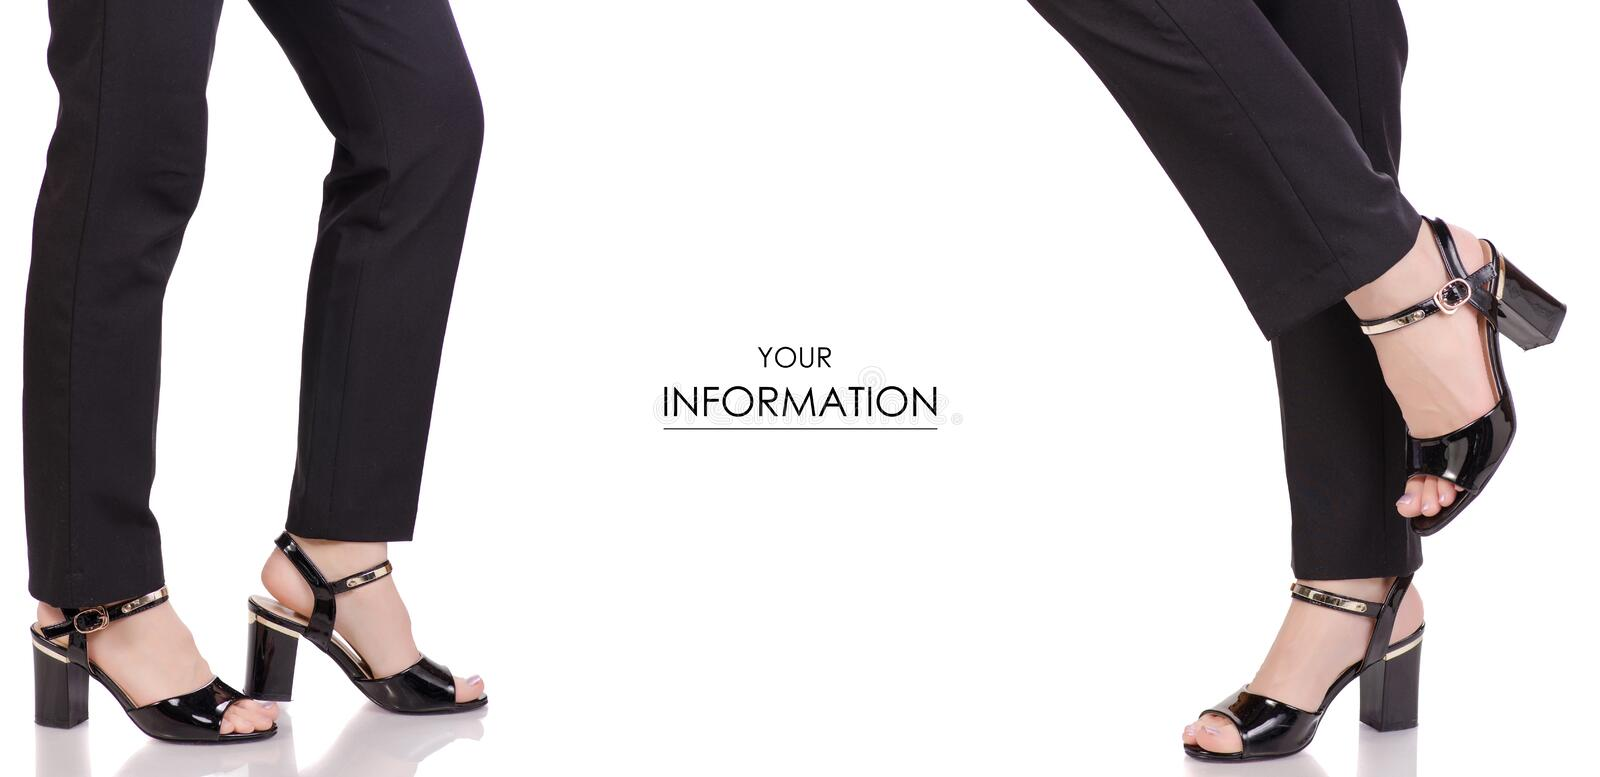 Female legs in classic black pants black lacquer shoes classic style fashion beauty shop buy set pattern. On white background isolation royalty free stock photo